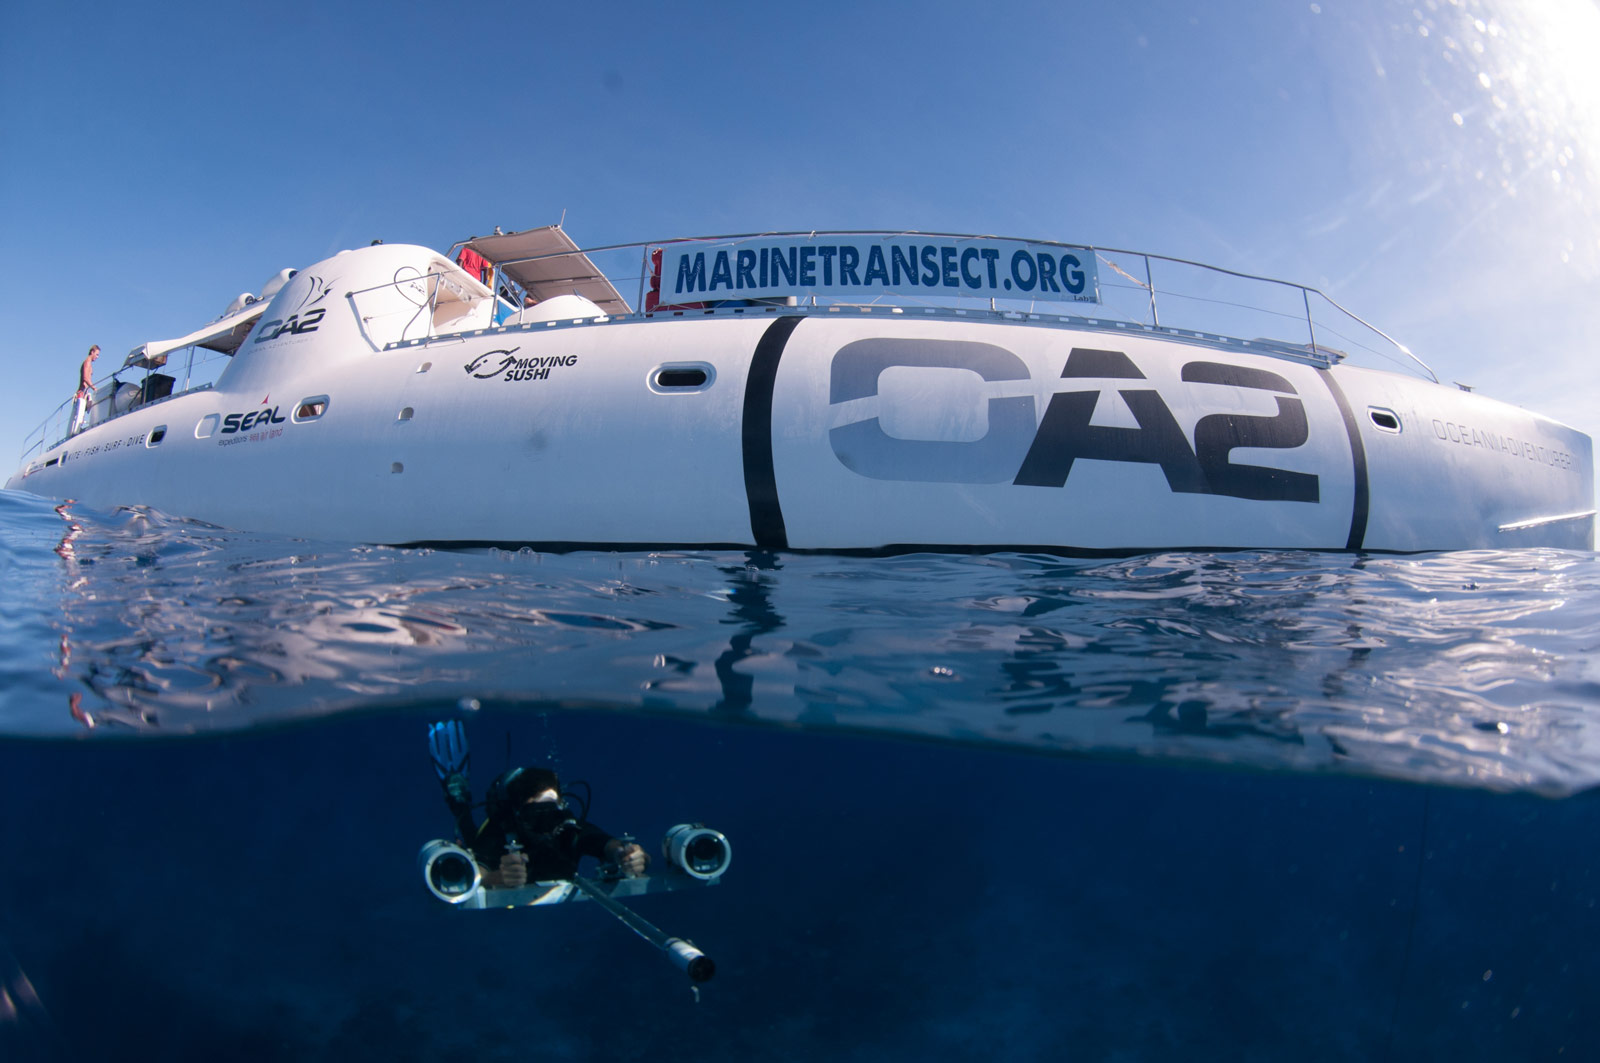 East-african-coral-reef-diving-Copyright-Caine-Delacy-2012-2808